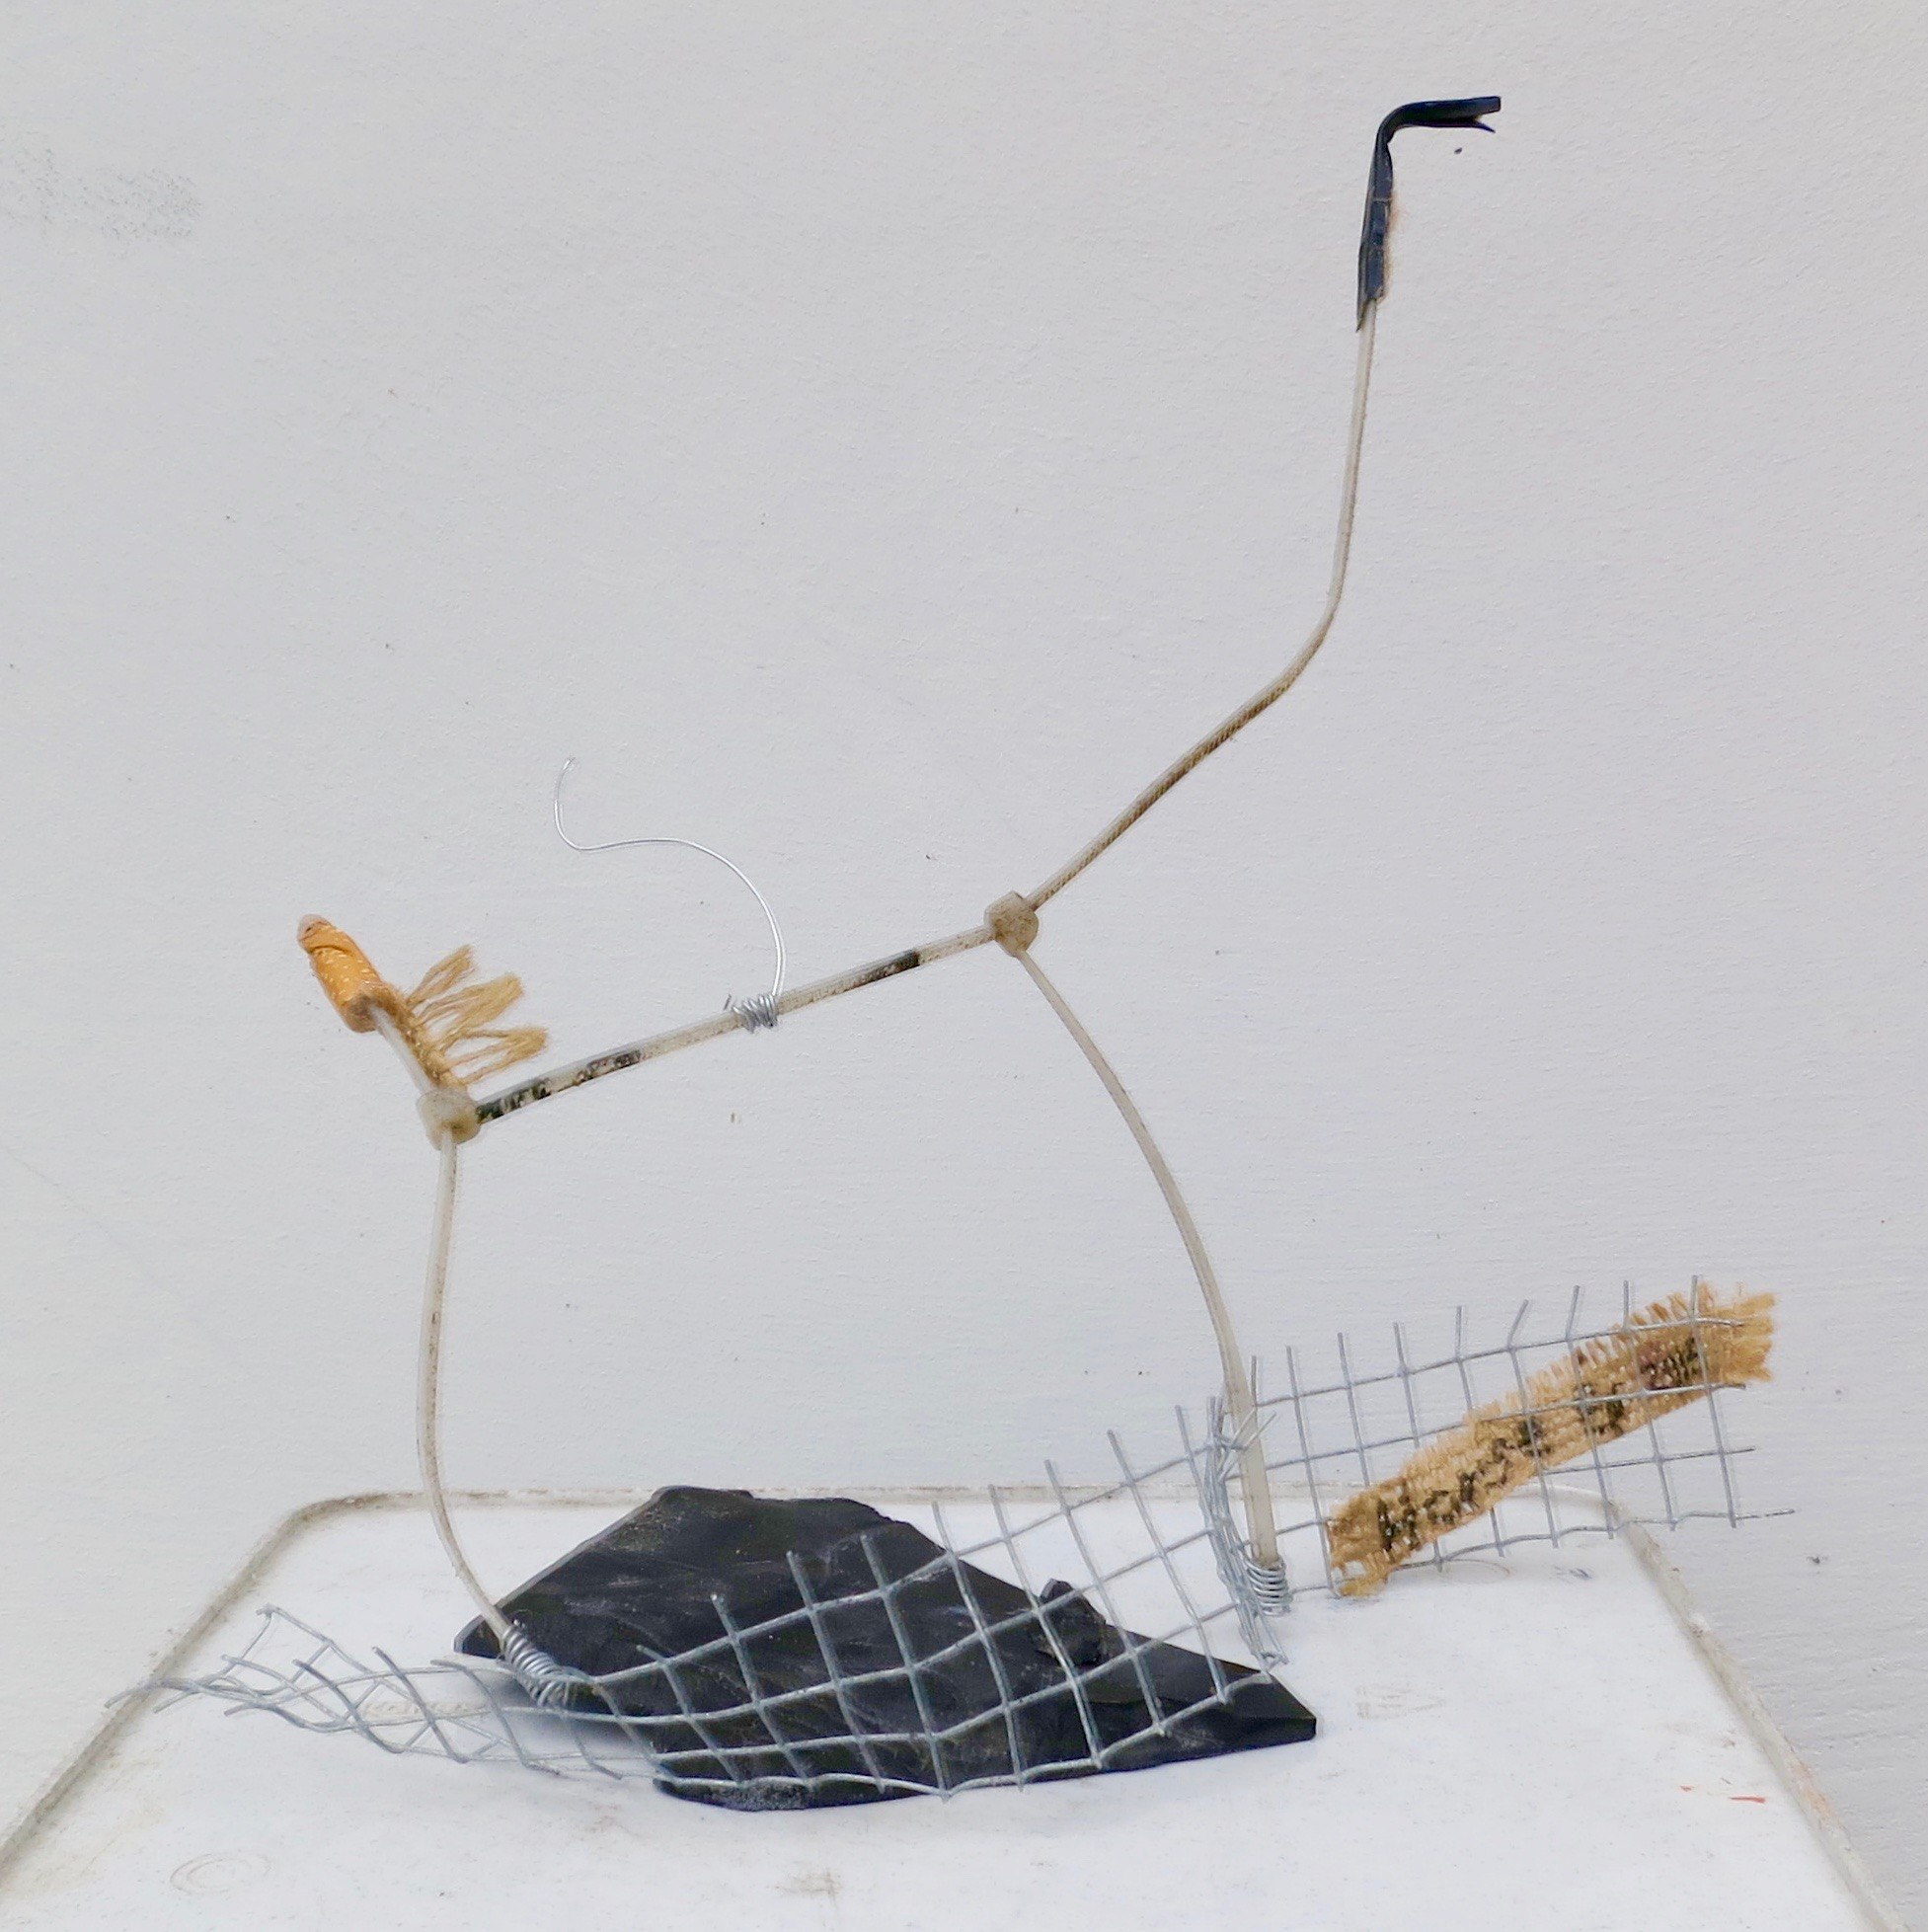 Horse, mixed media sculpture of found objects